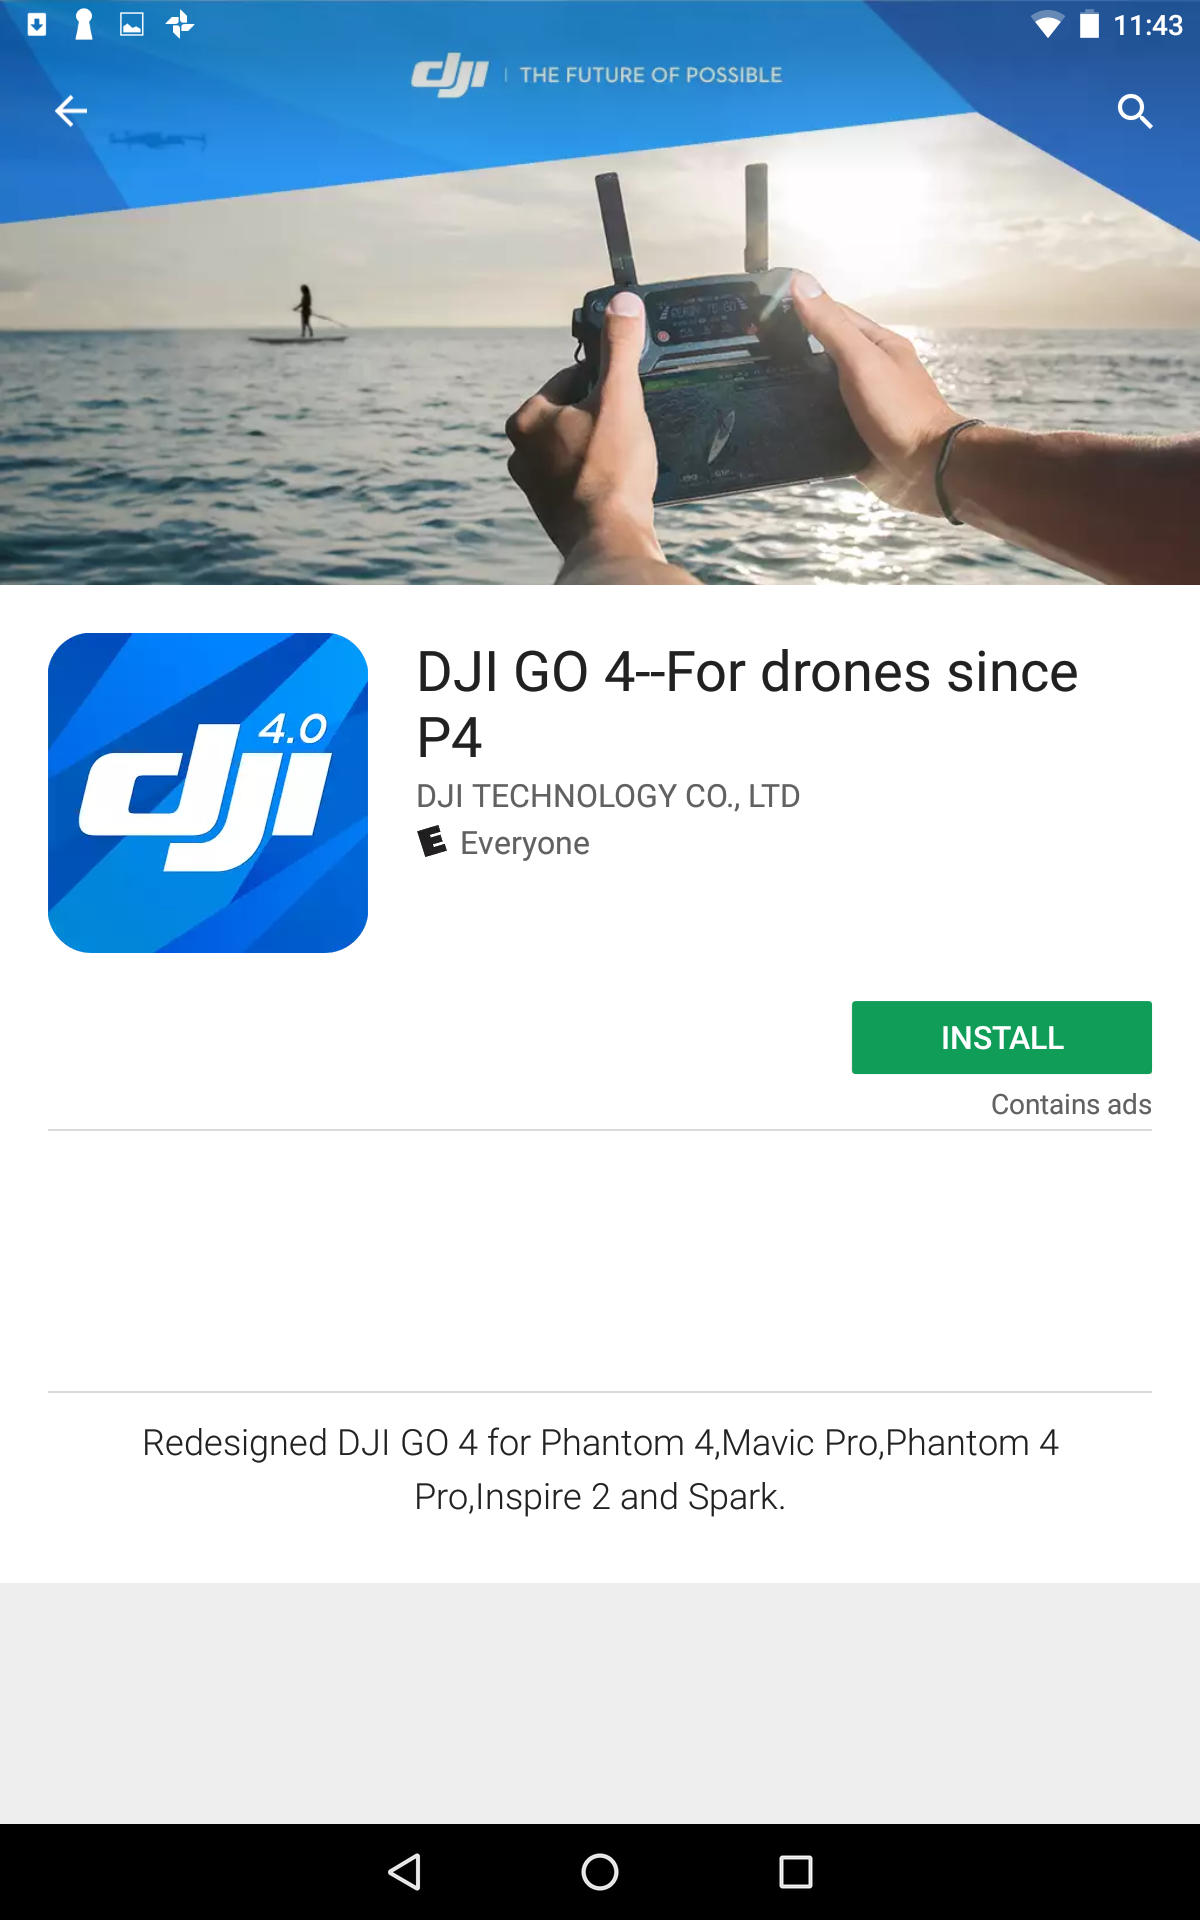 Unboxing and Setup of your Drone : PrecisionMapper Support